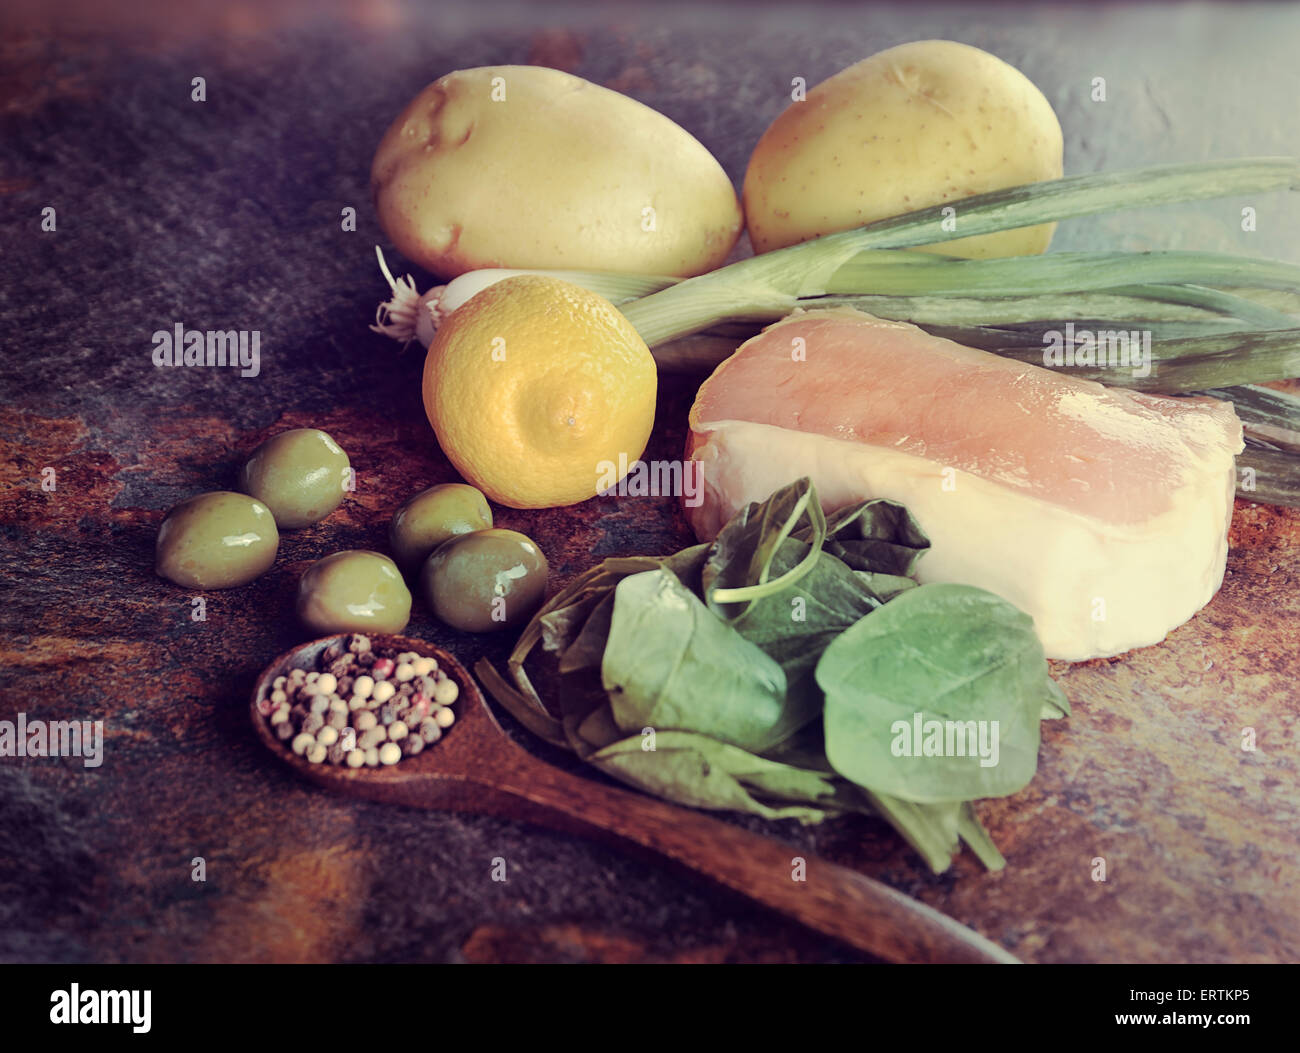 Pork Roast with Gold Potatoes and Spinach - Stock Image